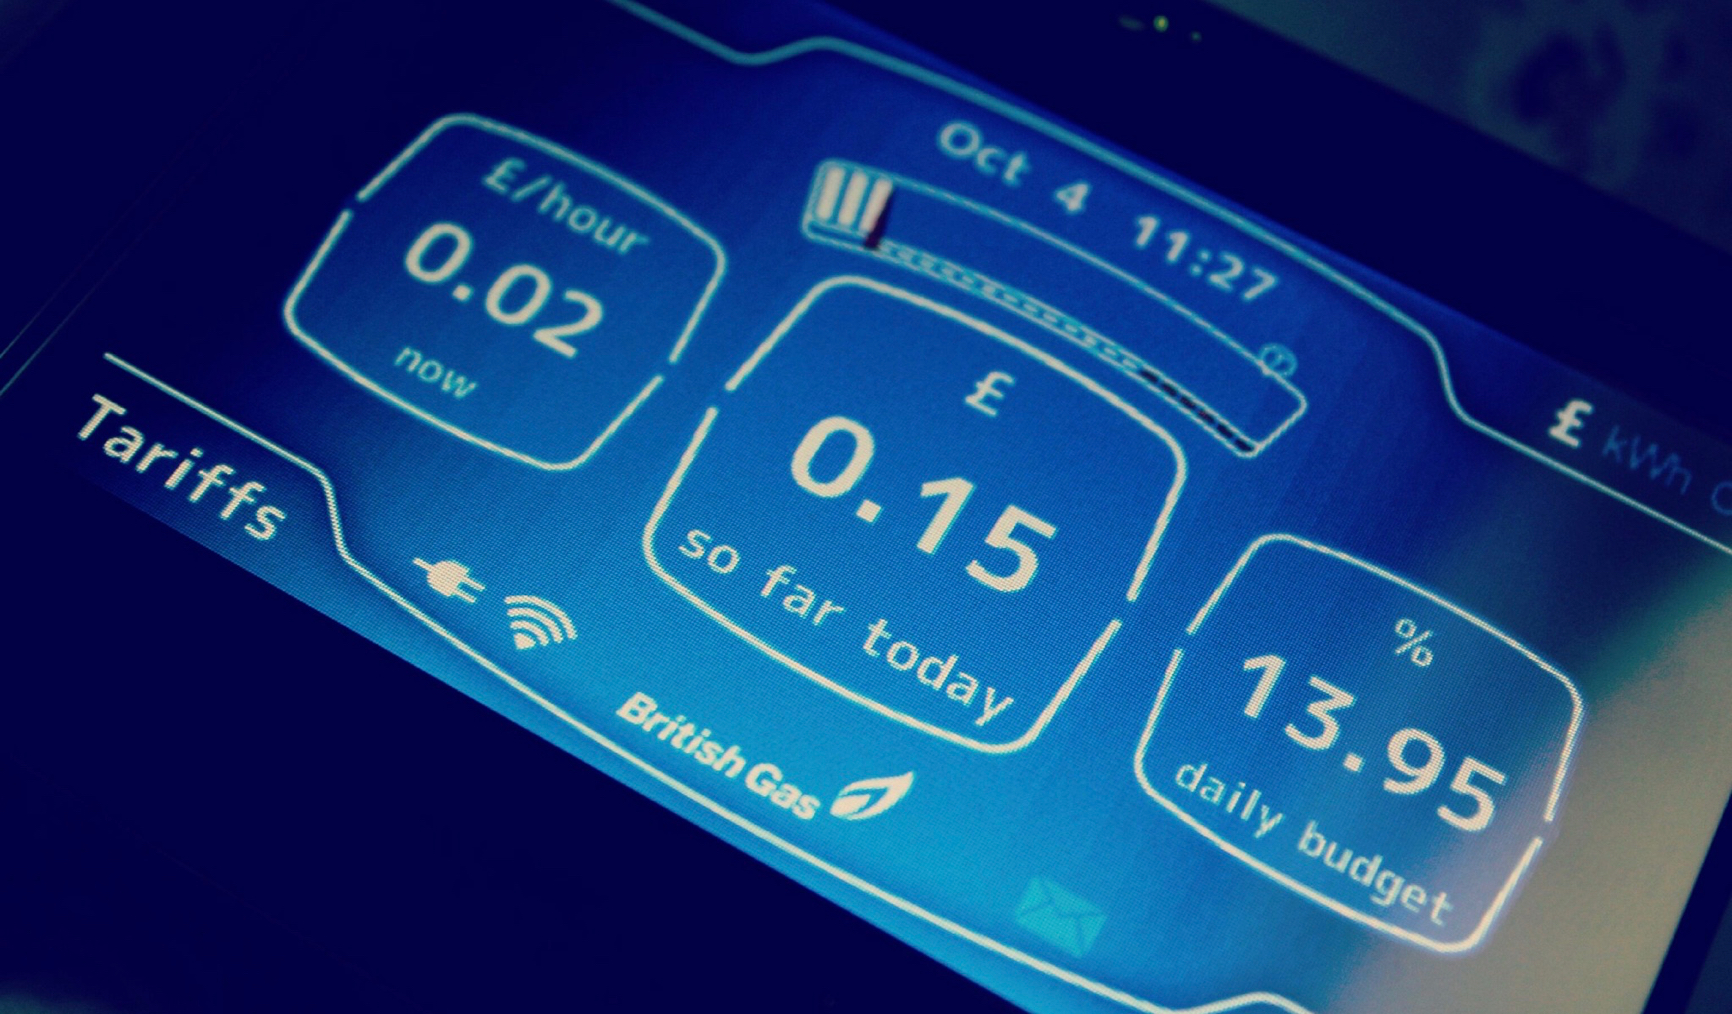 Smart metering as a solution for Nigeria's electricity woes